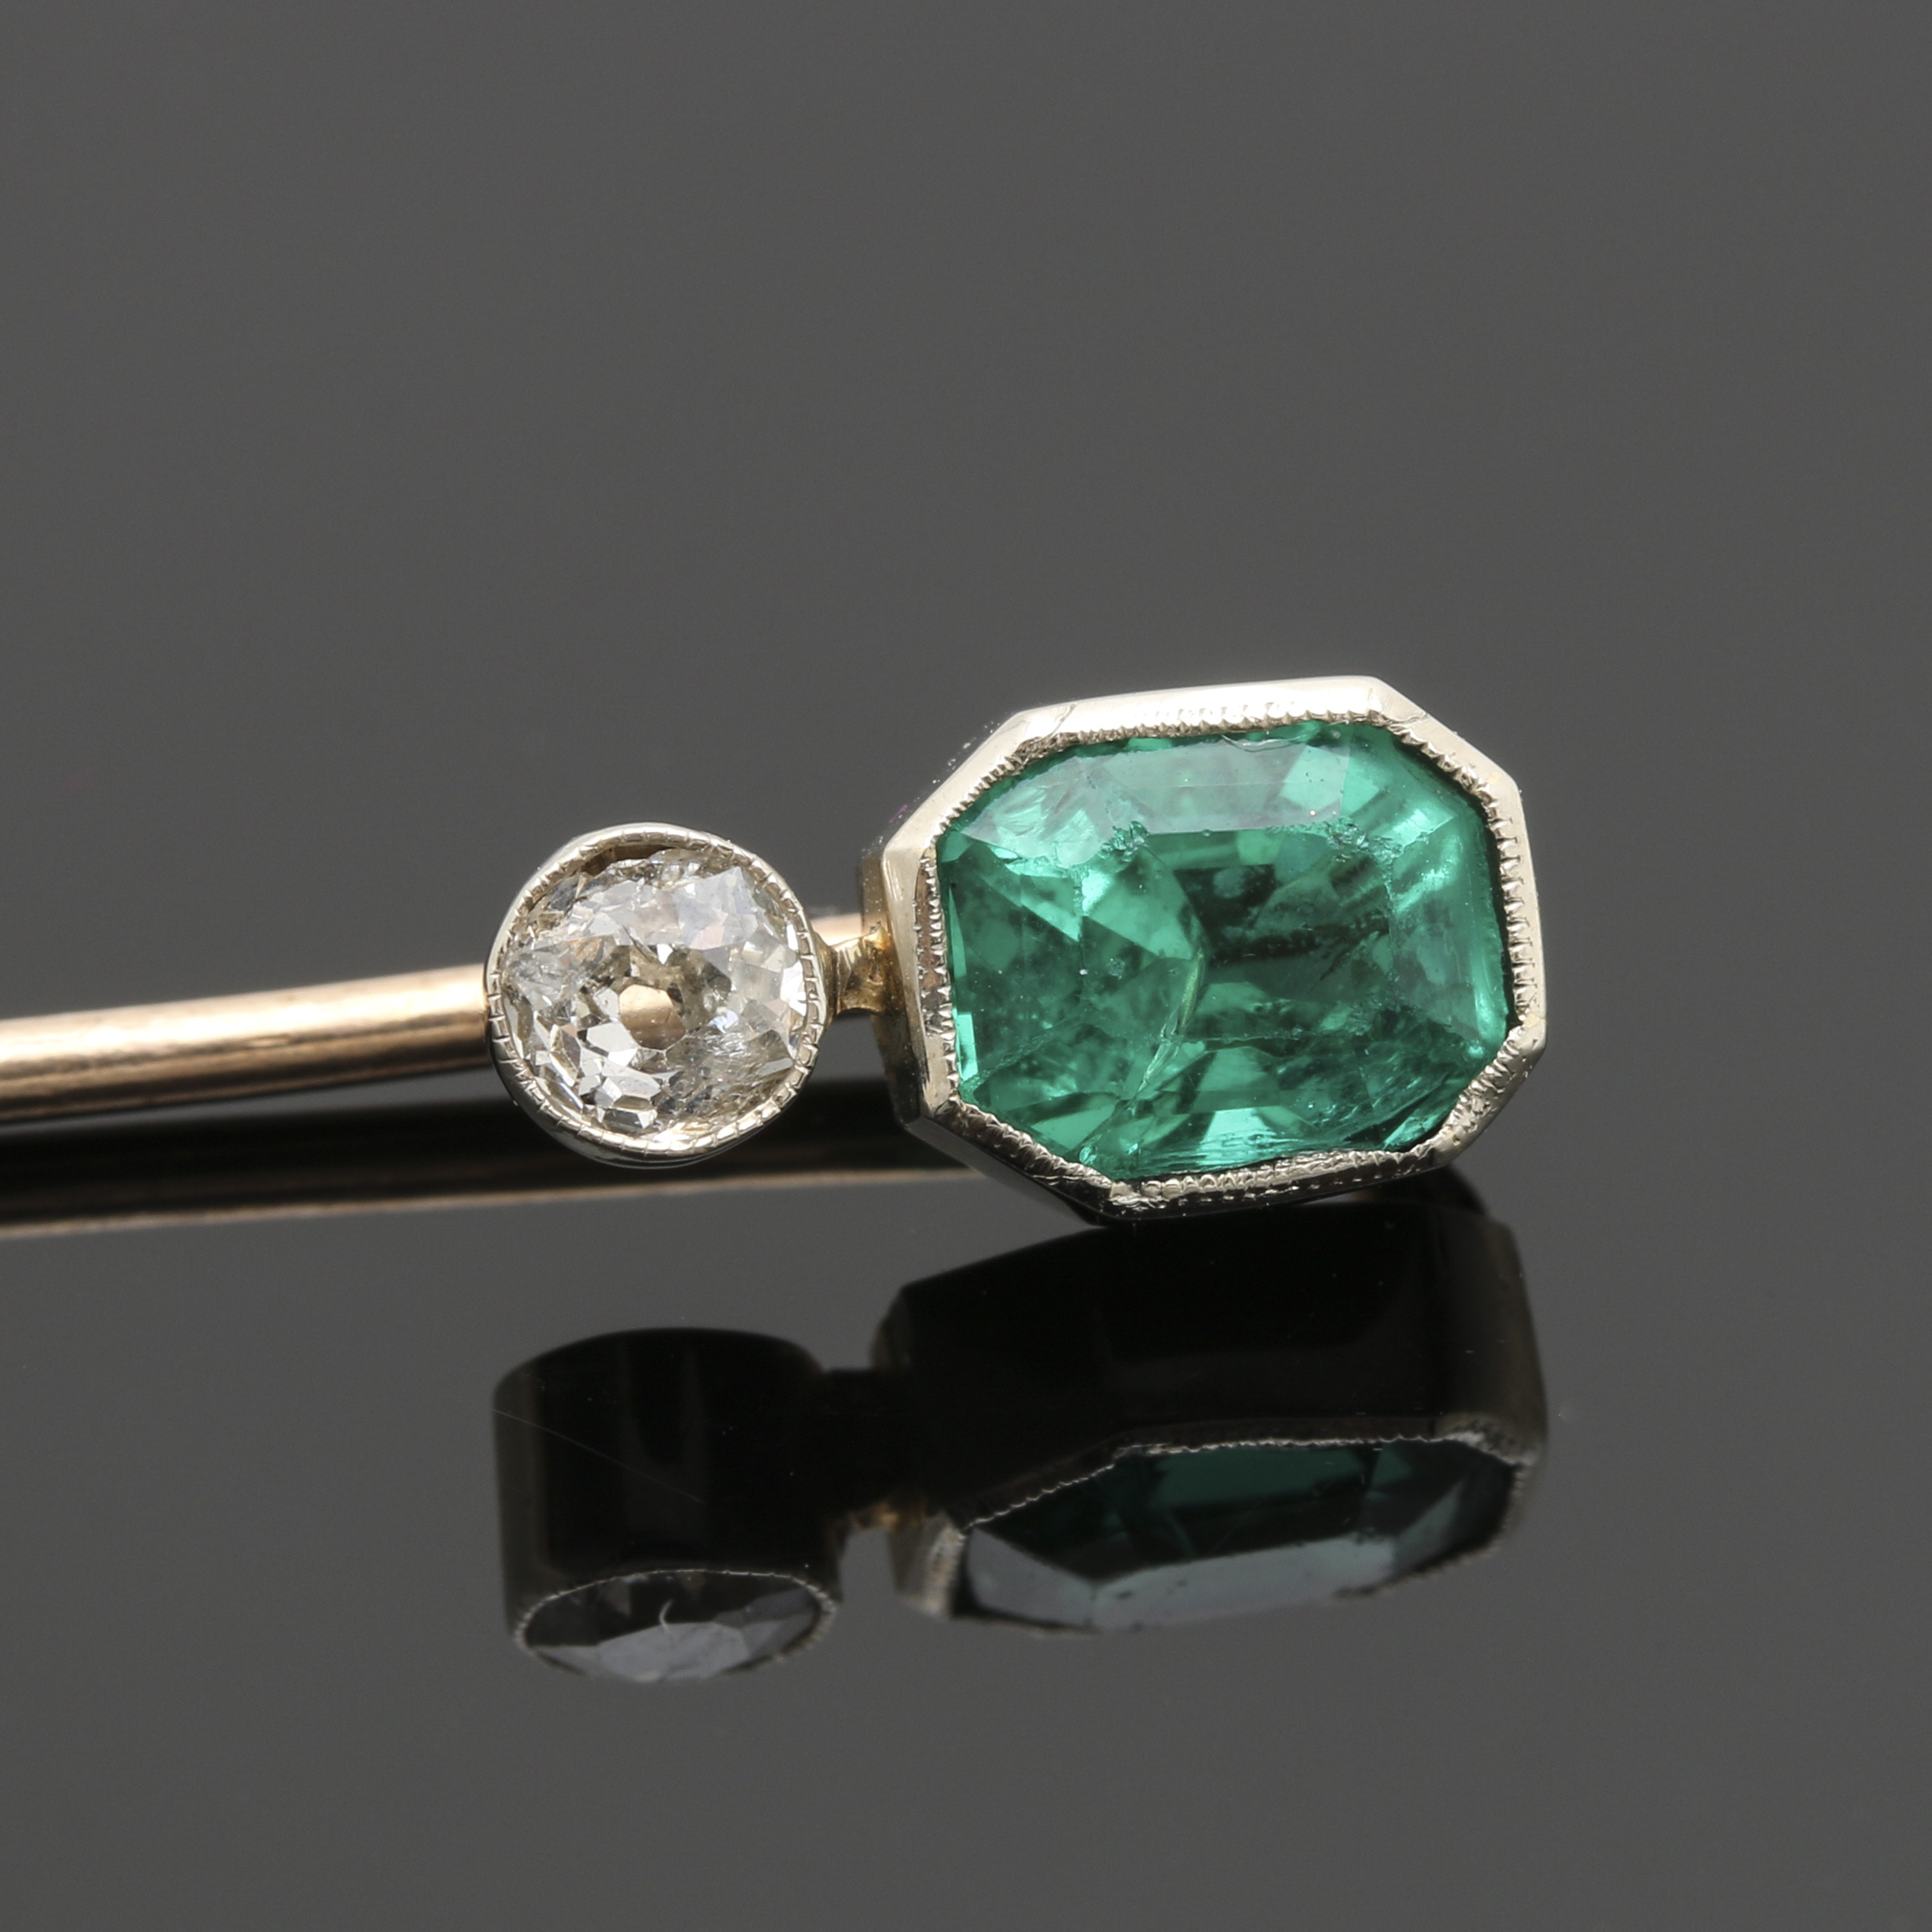 Art Deco 10K Yellow Gold and 14K White Gold Diamond with Glass Stick Pin